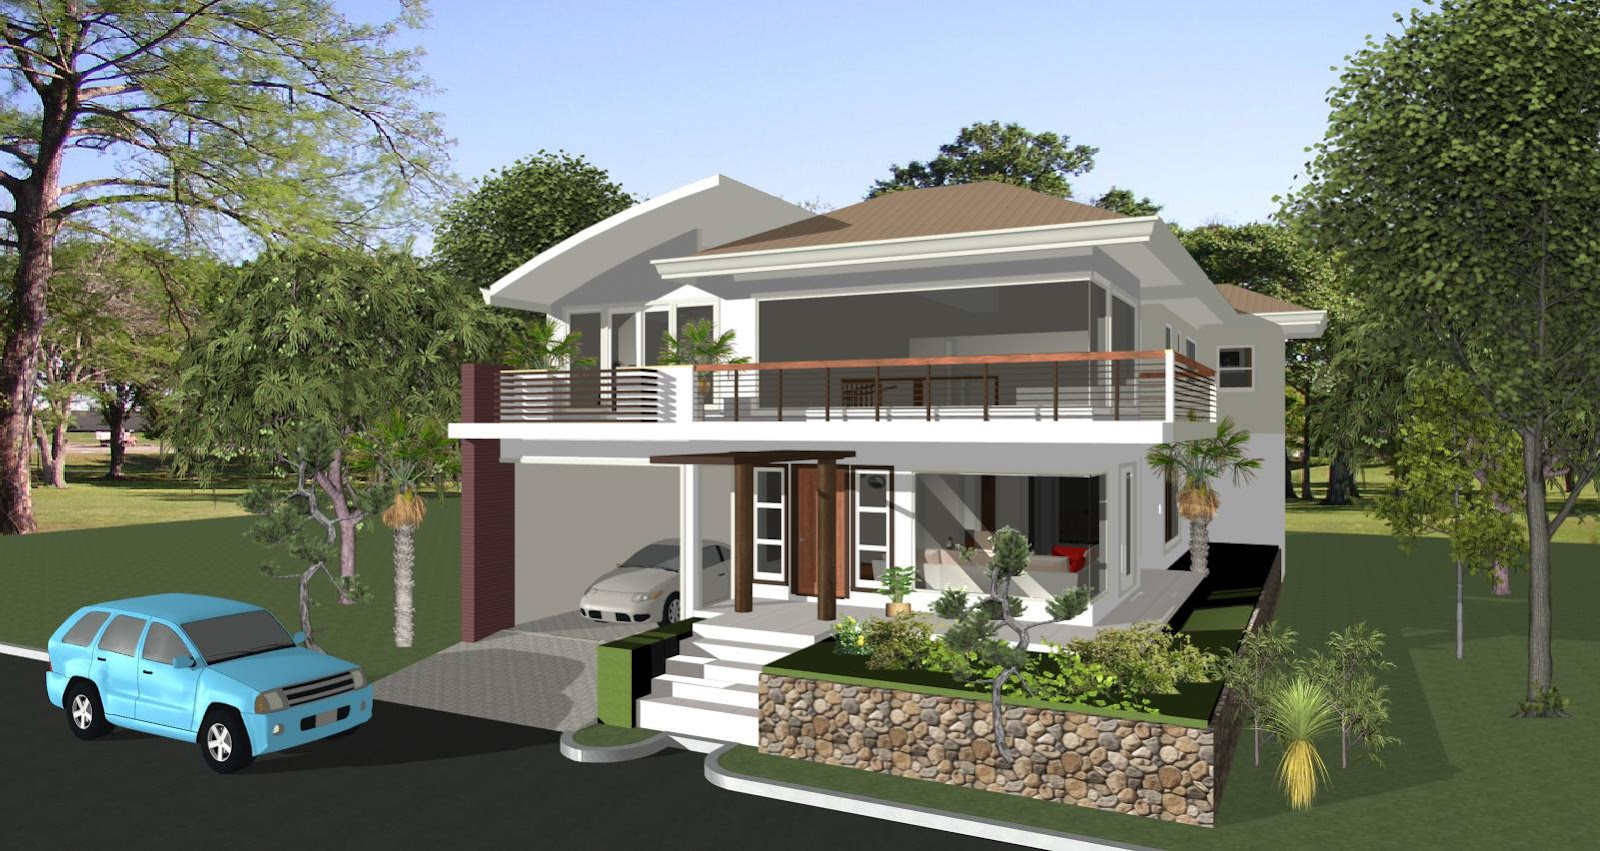 House designs philippines architect bill house plans for Elevated modern house design